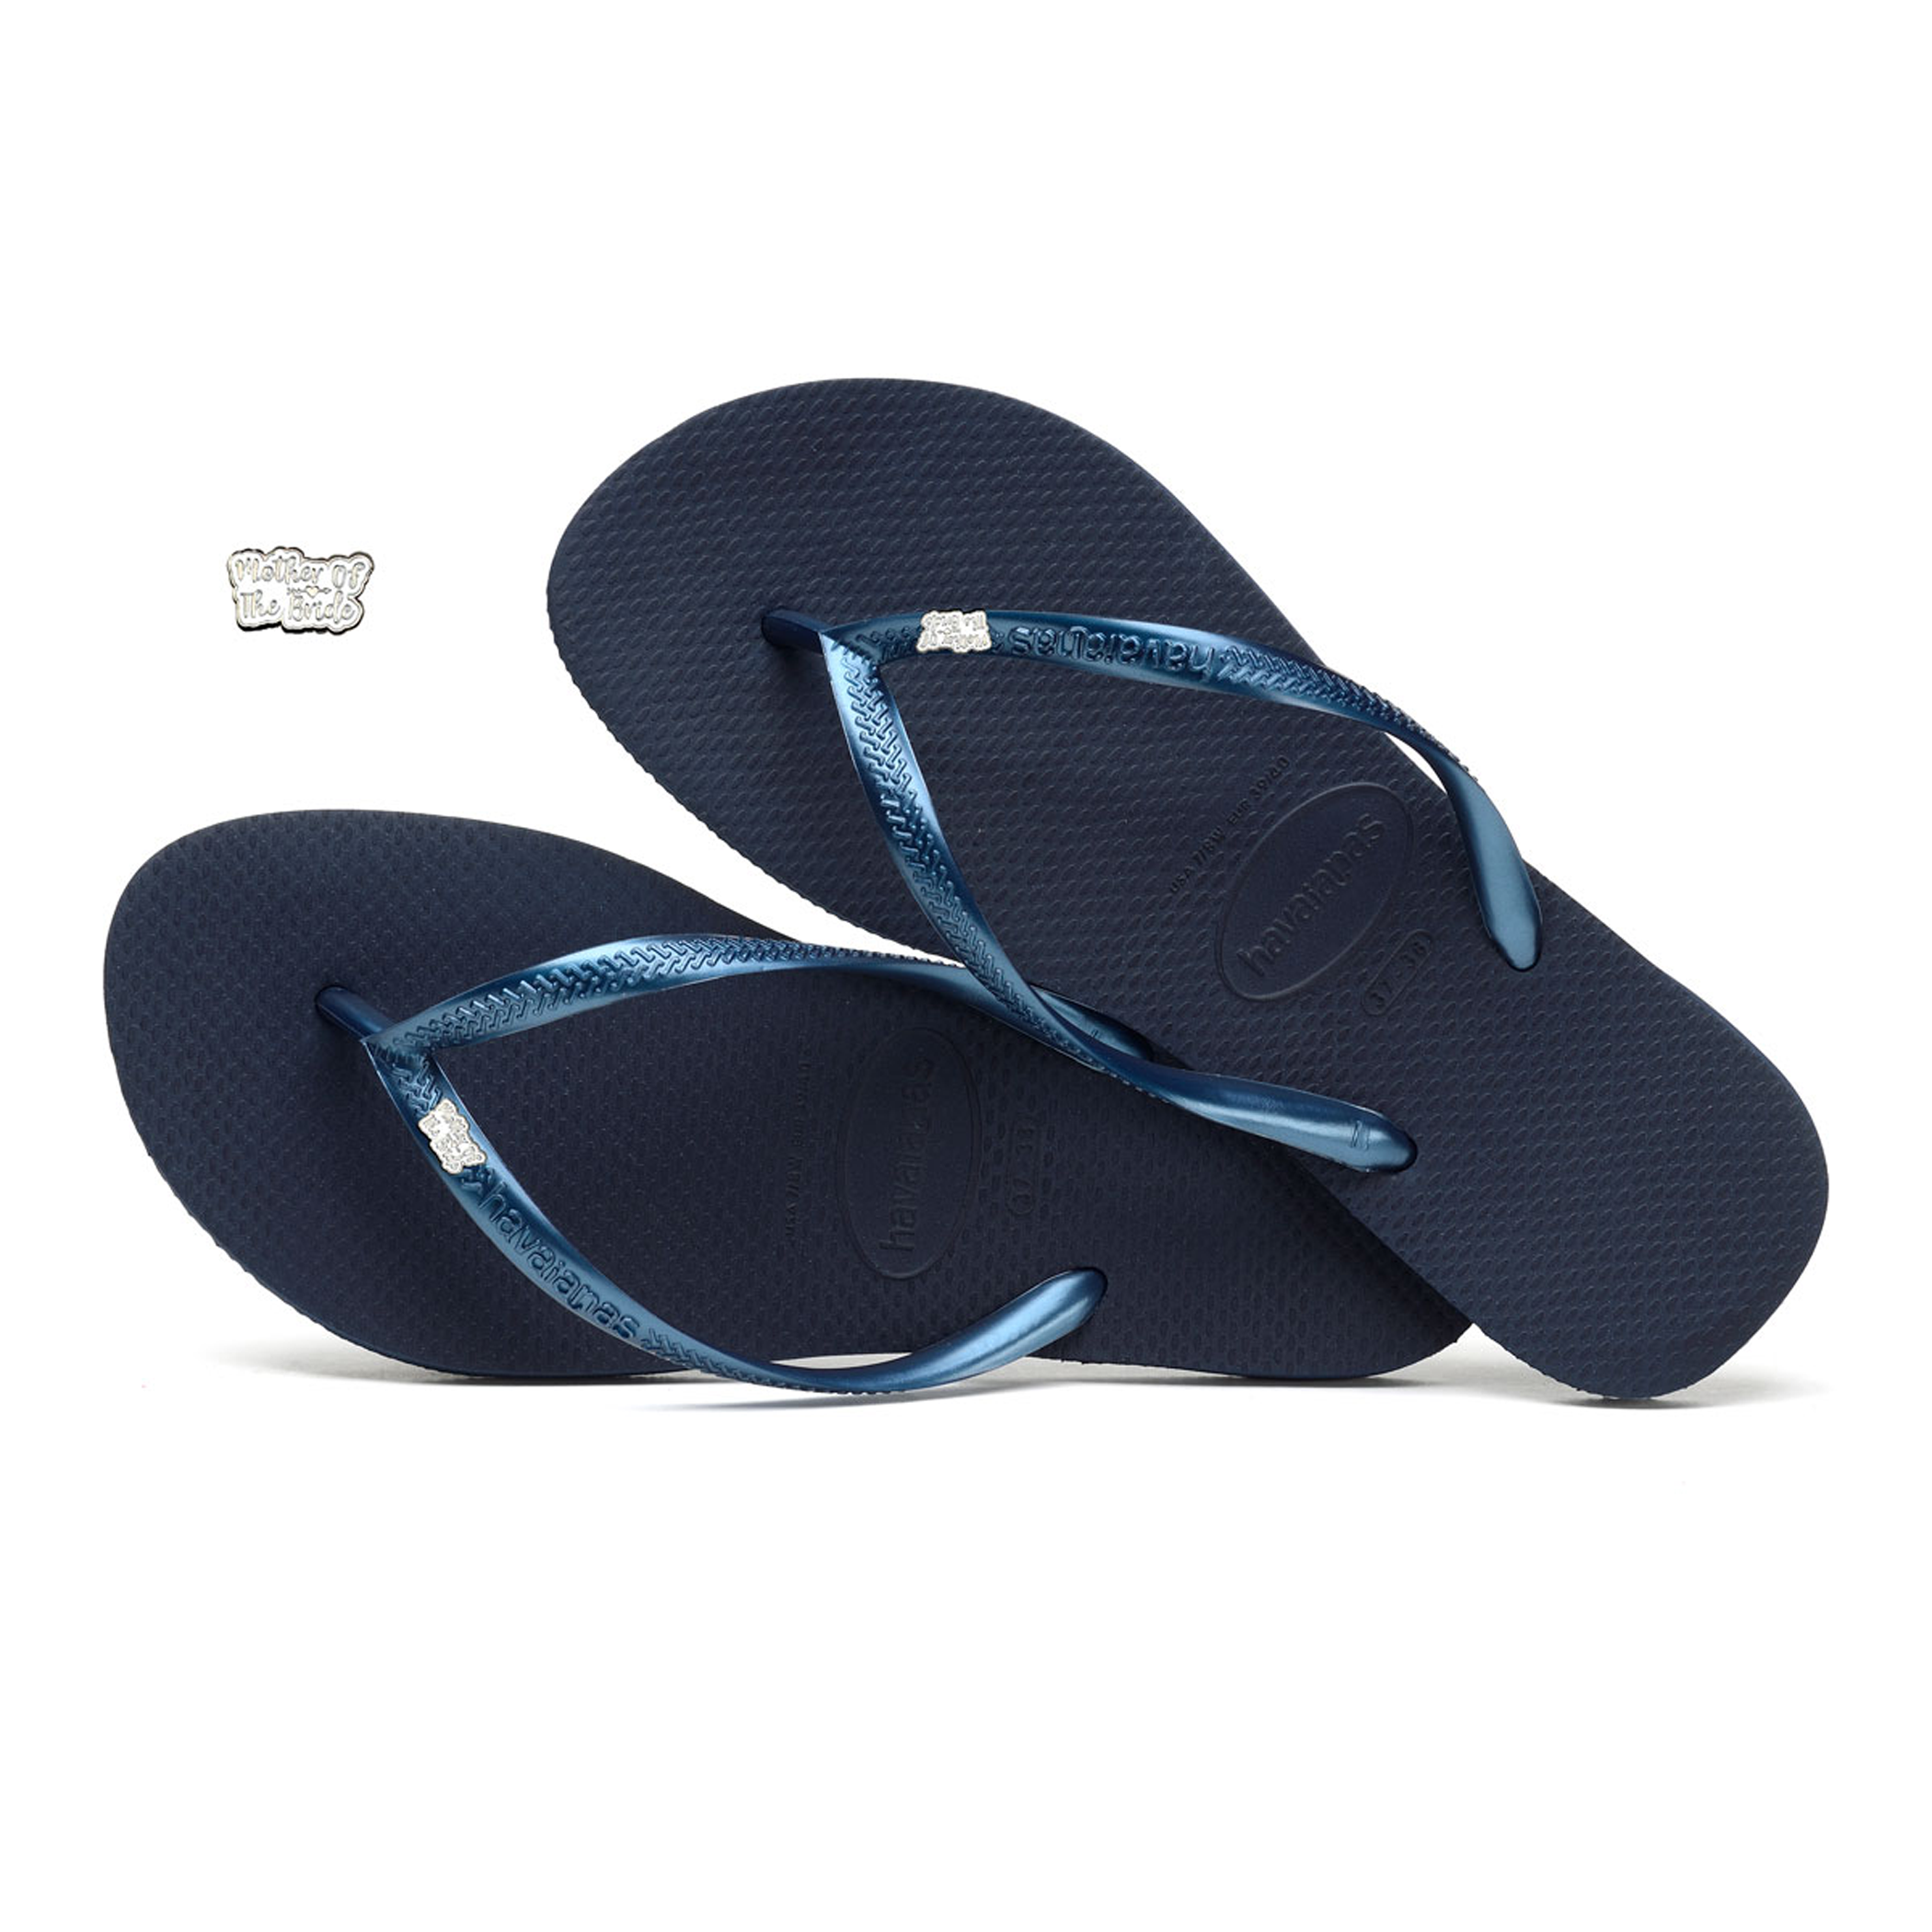 Silver Of Navy Havaianas The Bride White Slim Mother And Charm y0O8vmNnw